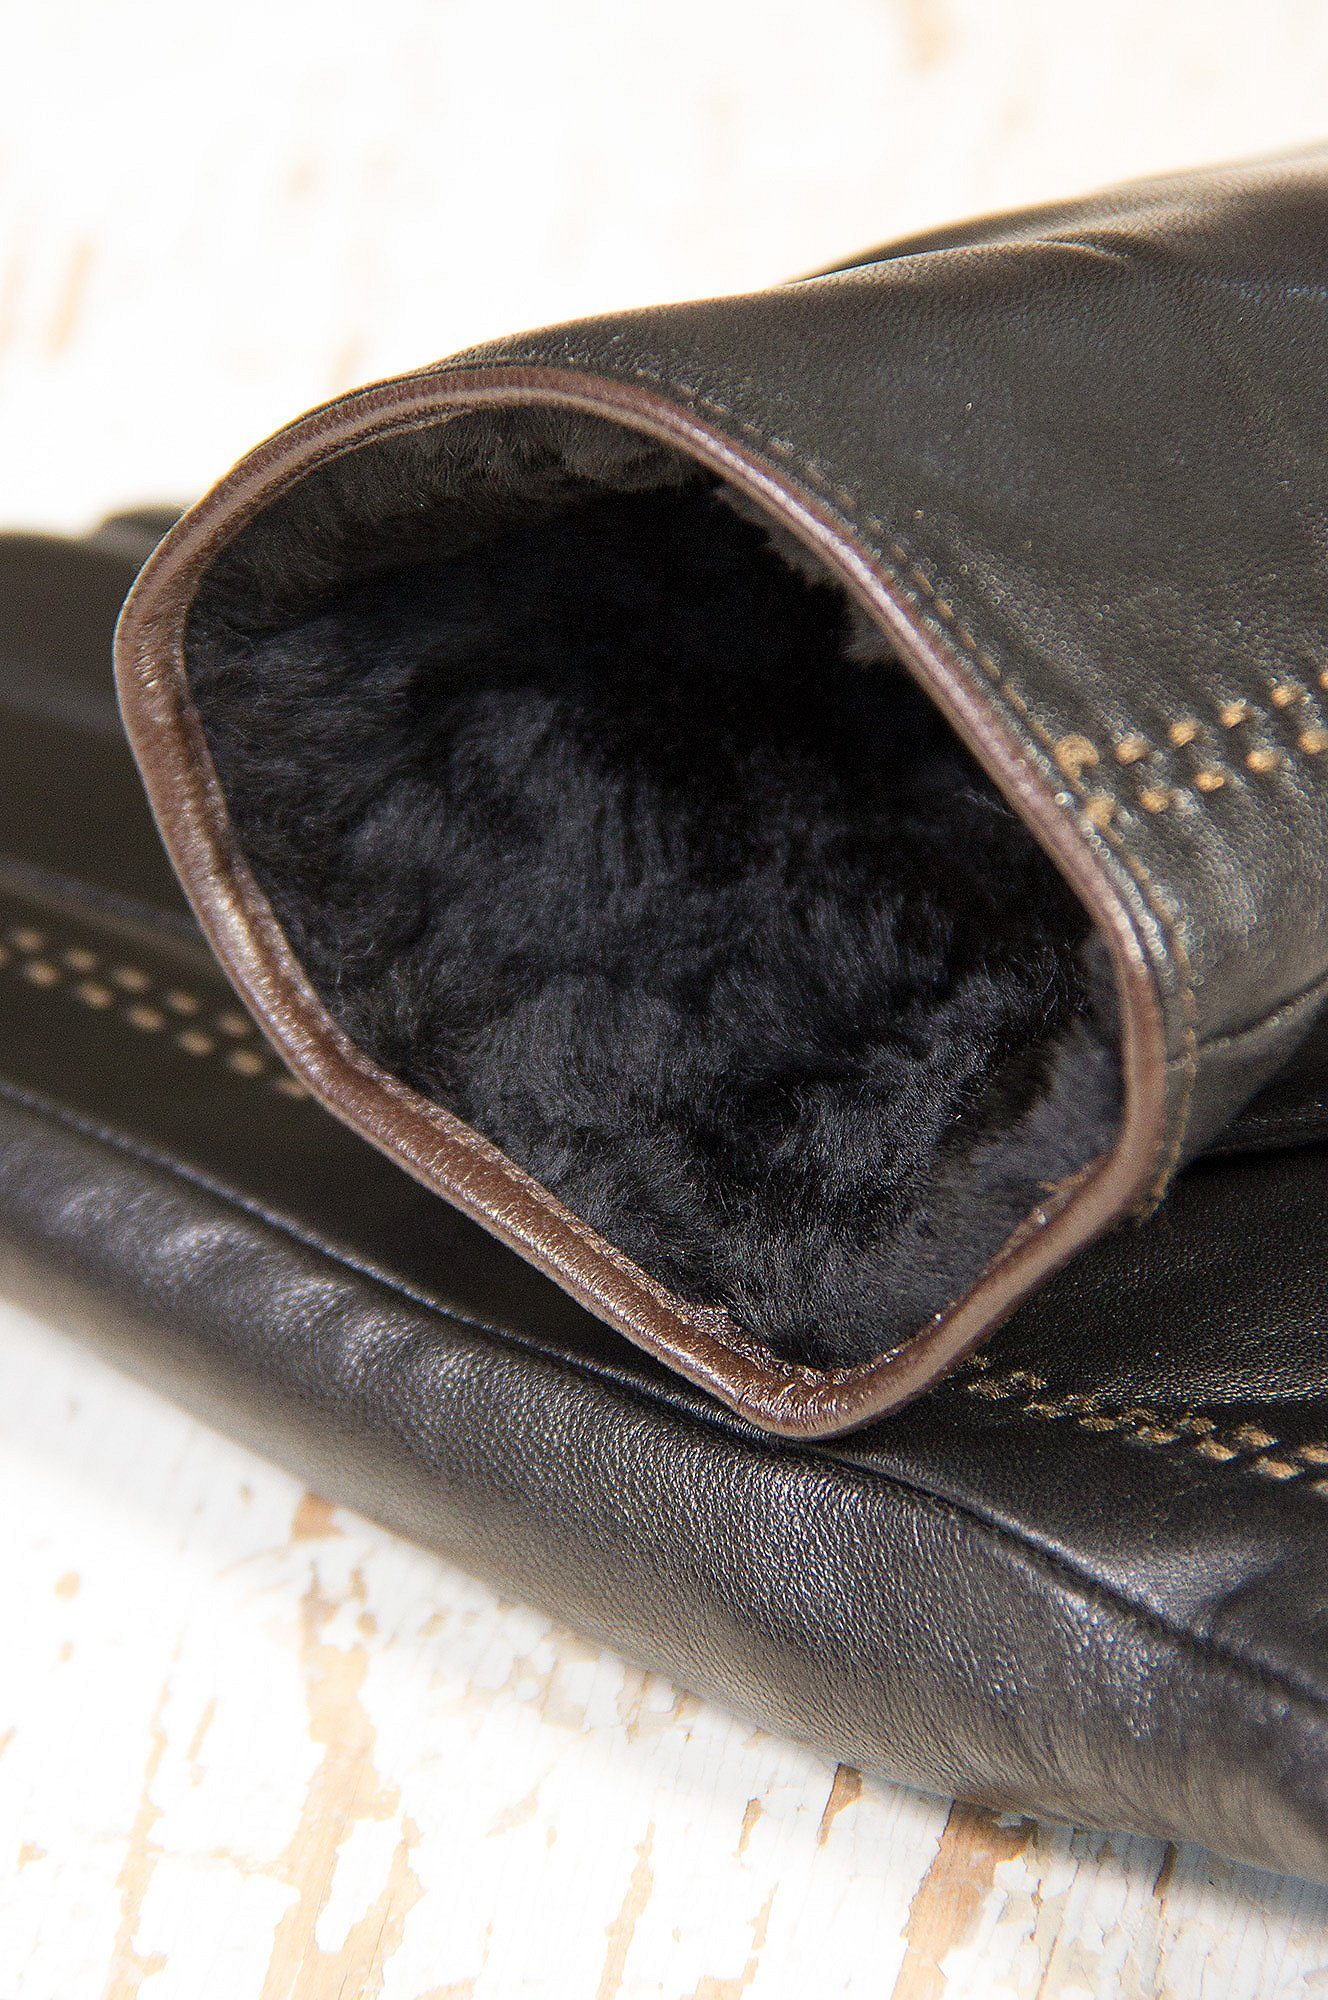 Men's Premium Lambskin Leather Gloves with Shearling Lining by Overland Sheepskin Co (Image #5)